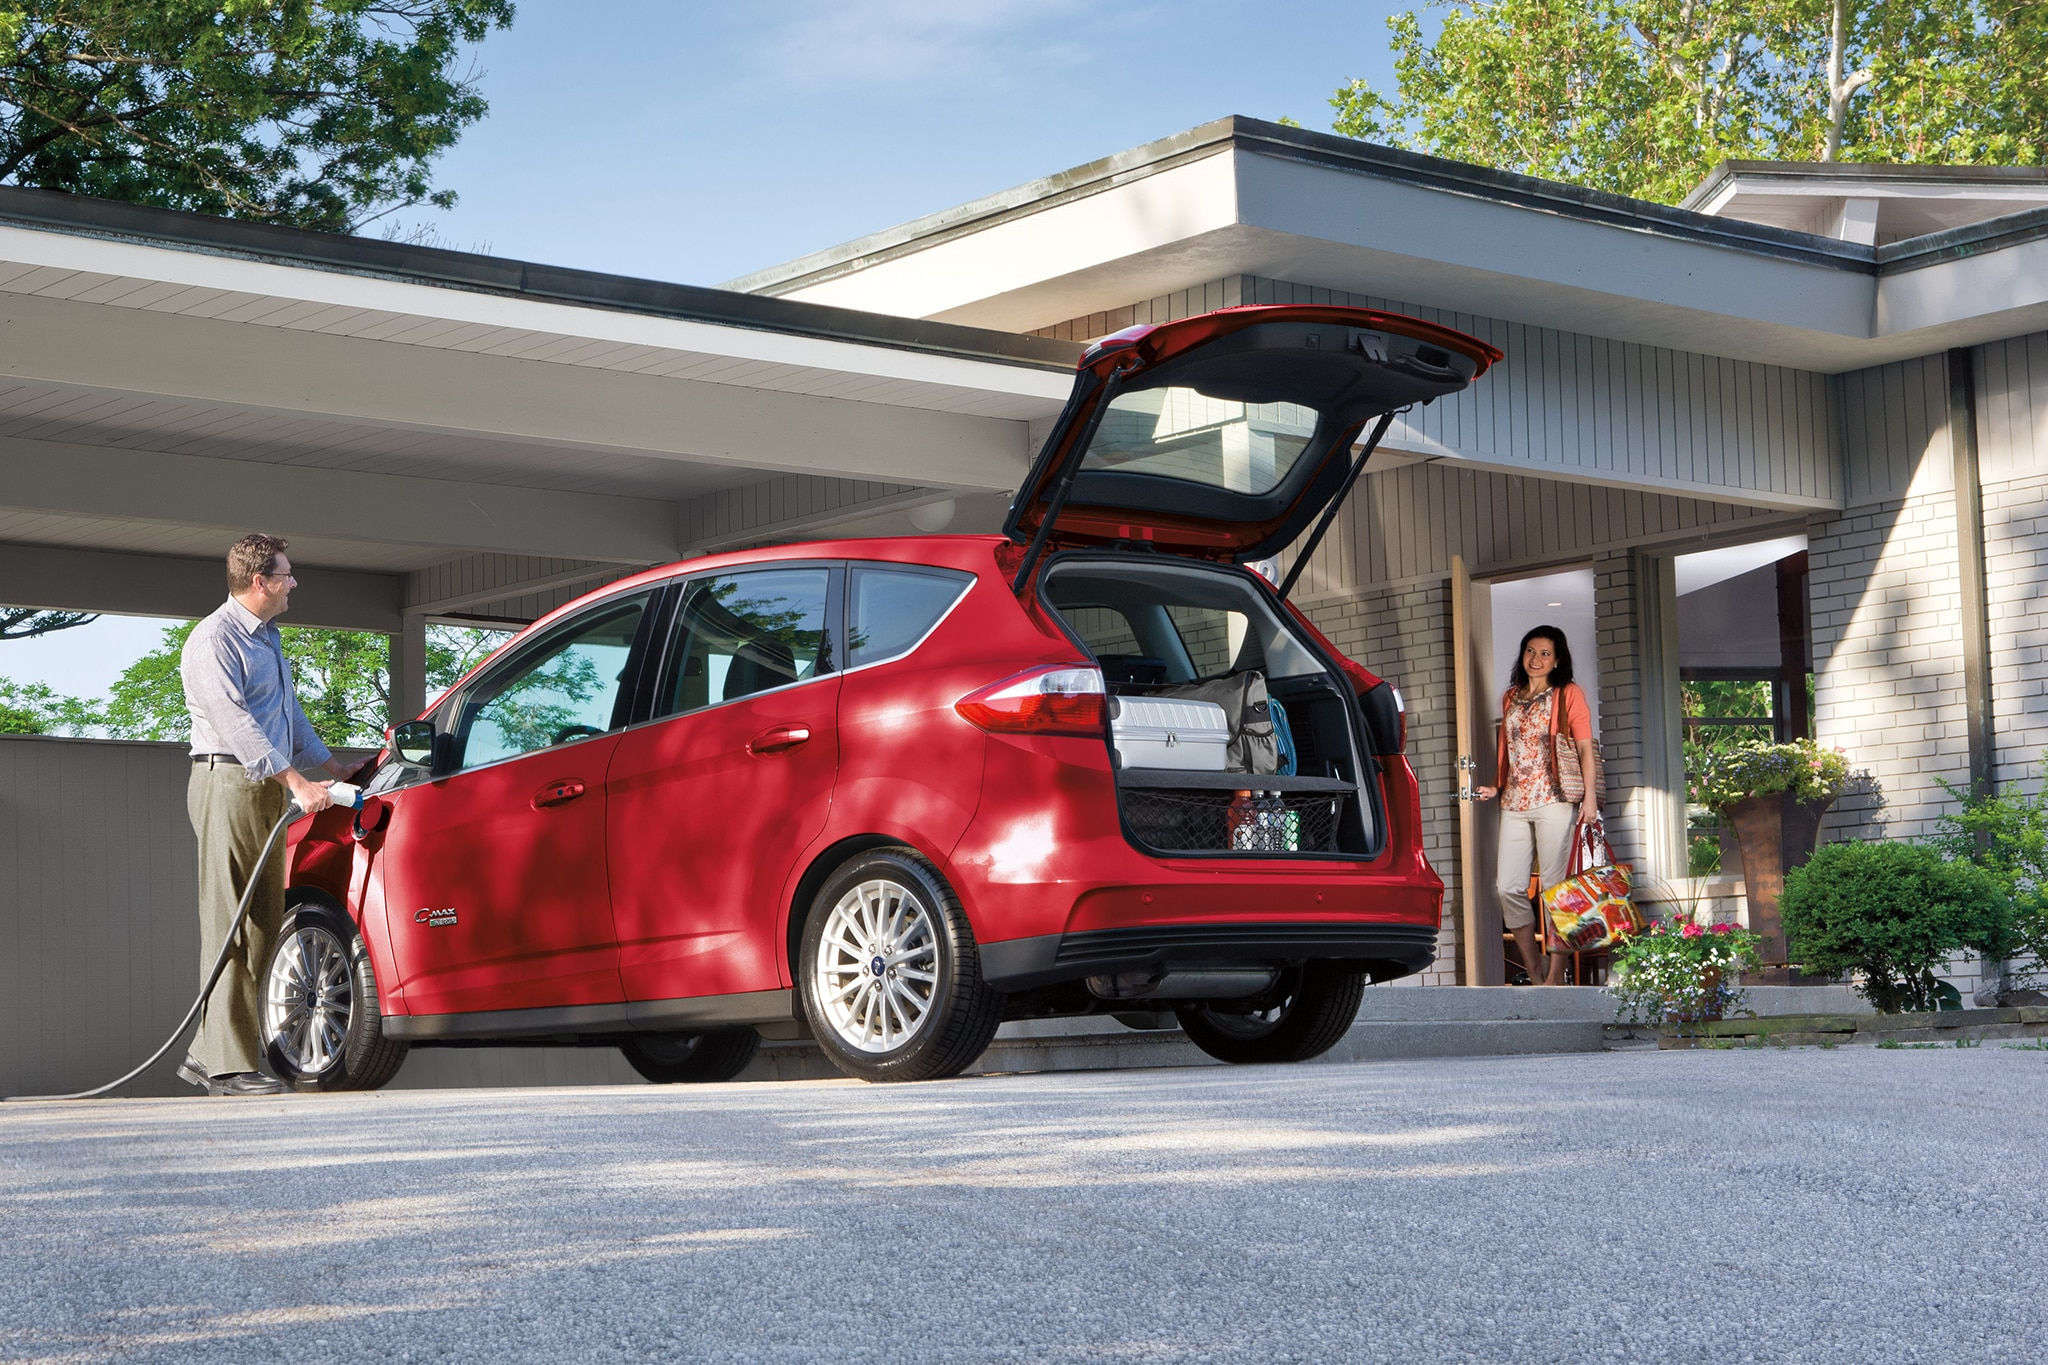 Ford C Max Energi Price >> 2016 Ford C-Max Energi SEL Review | Automobile Magazine